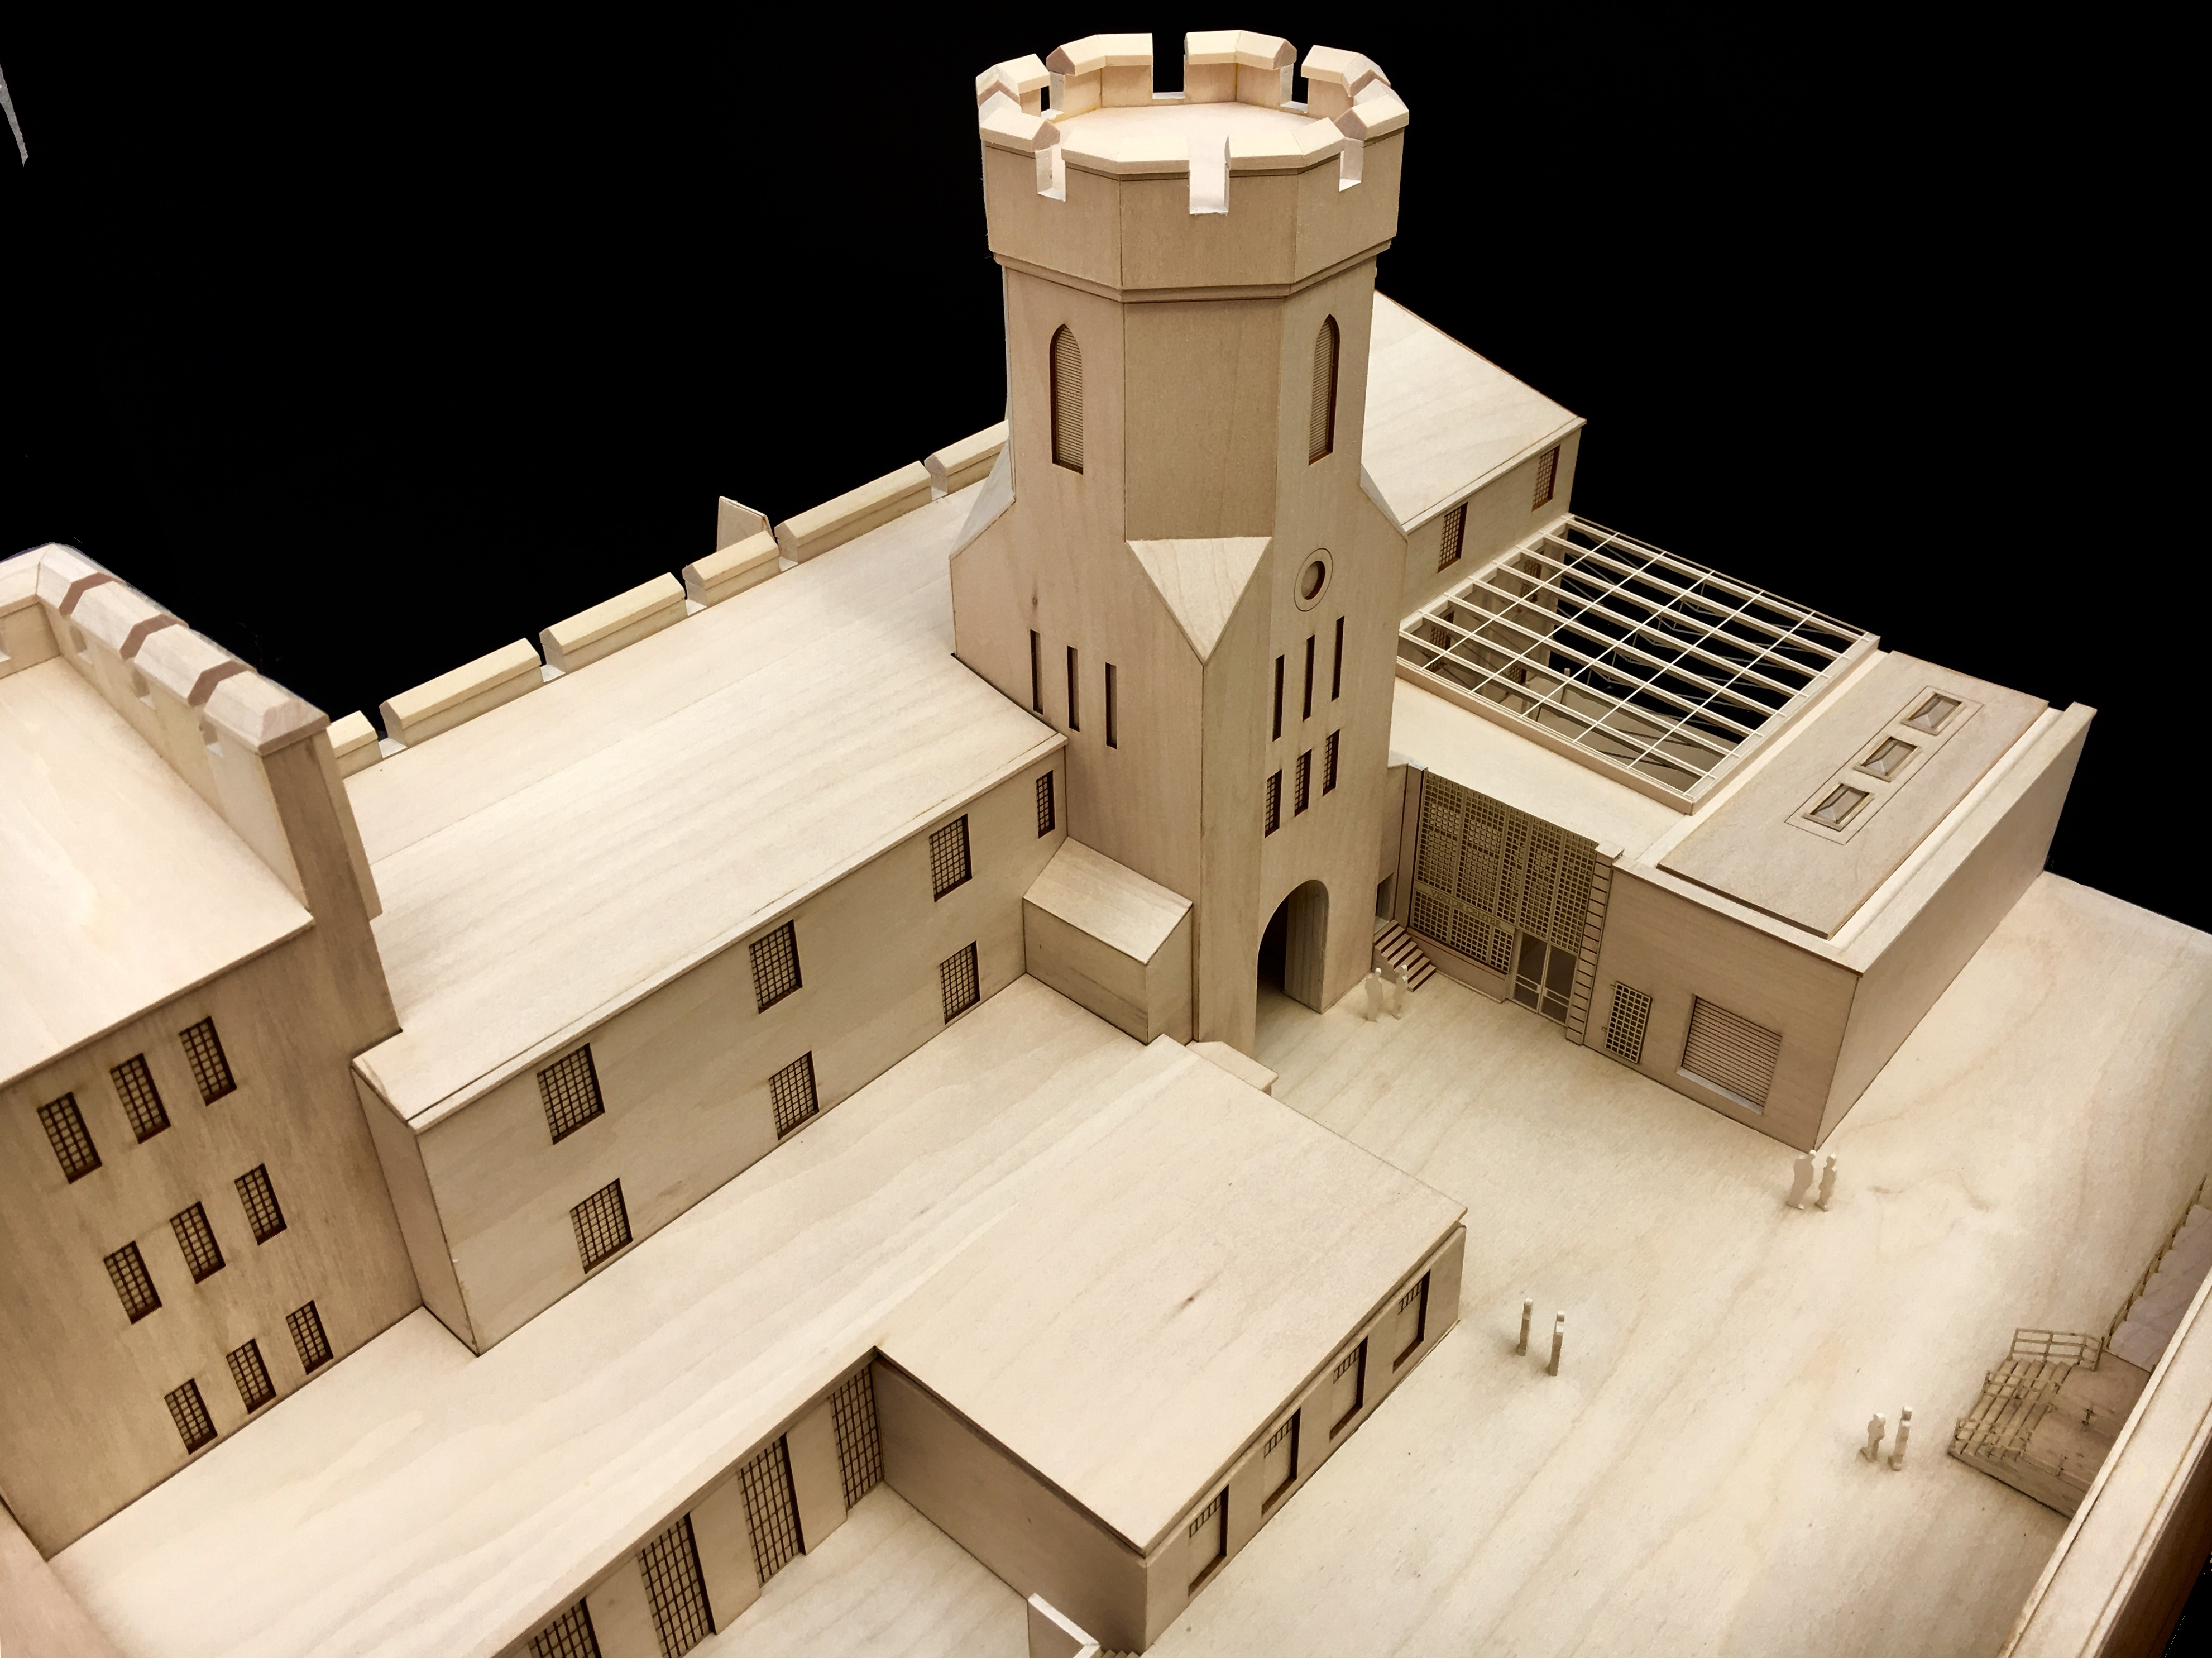 Eastern State Penitentiary model on display showing the new Visitor Center